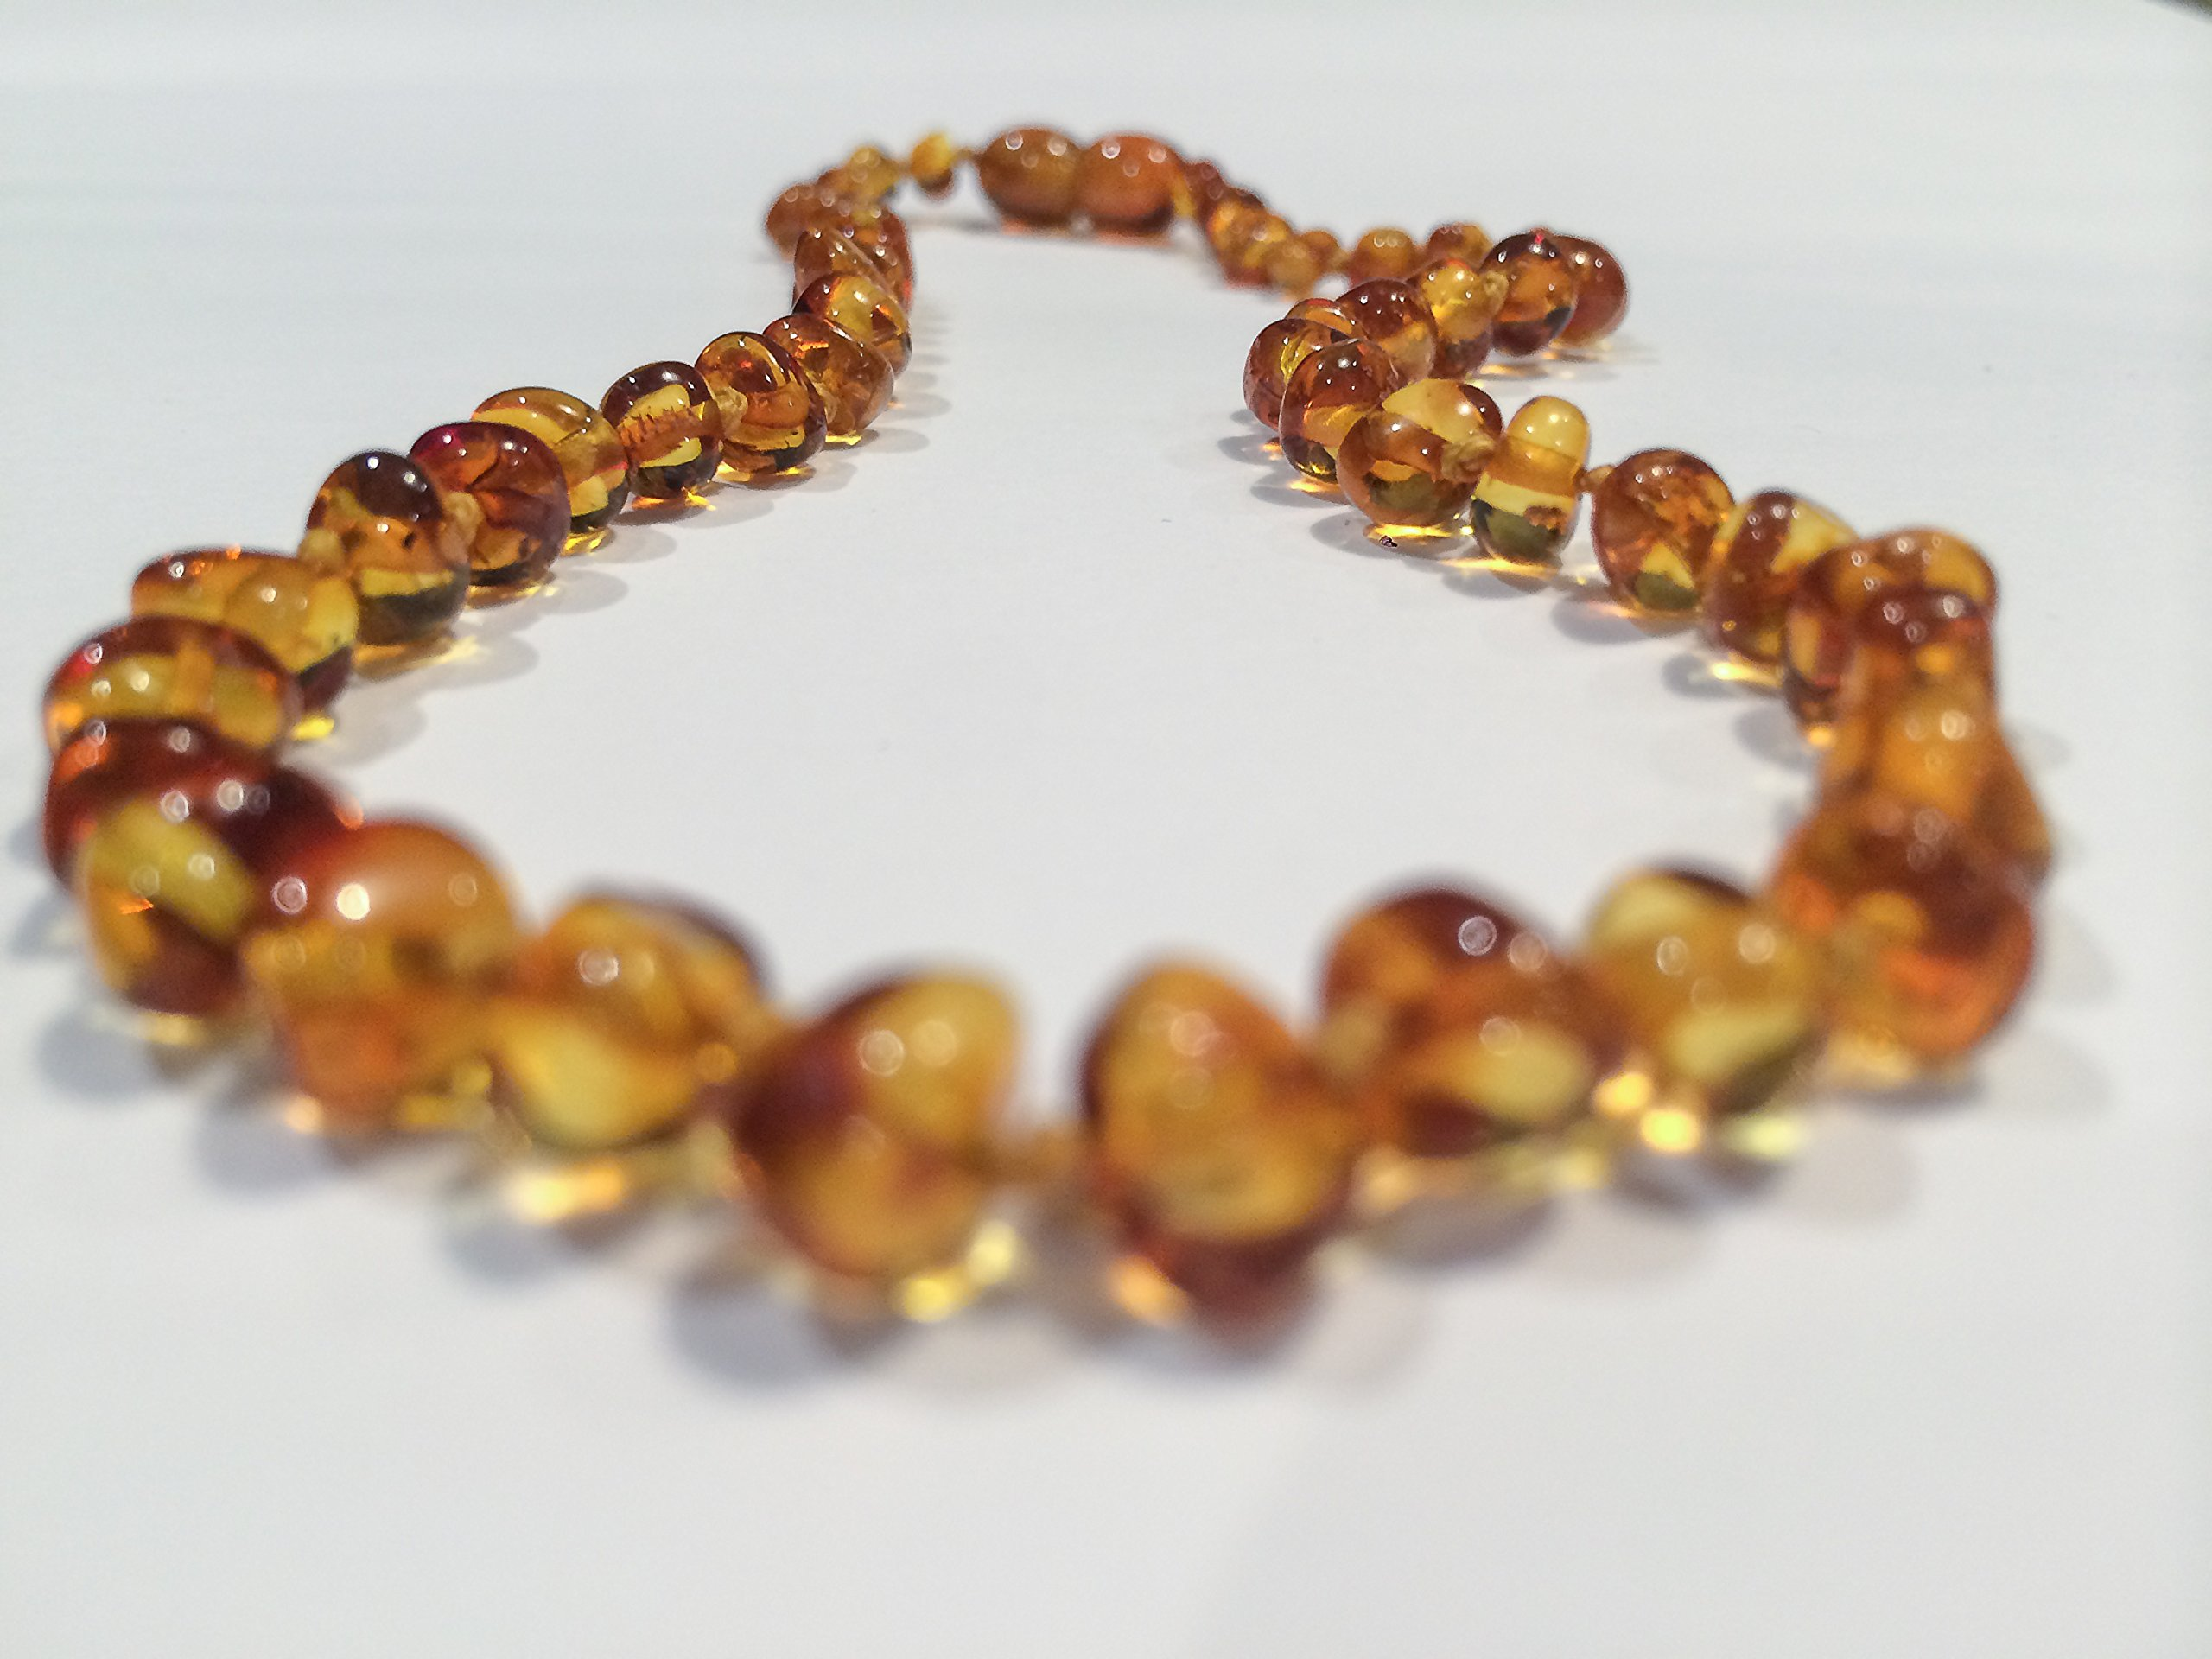 Luxury Baltic Amber Teething Necklace Allergy Asthma Relief Drooling Baby Infant Pain Toddler Teether Drooling fever Organic Highest Quality Maximum Effective Certified Authentic by Baltic Essentials